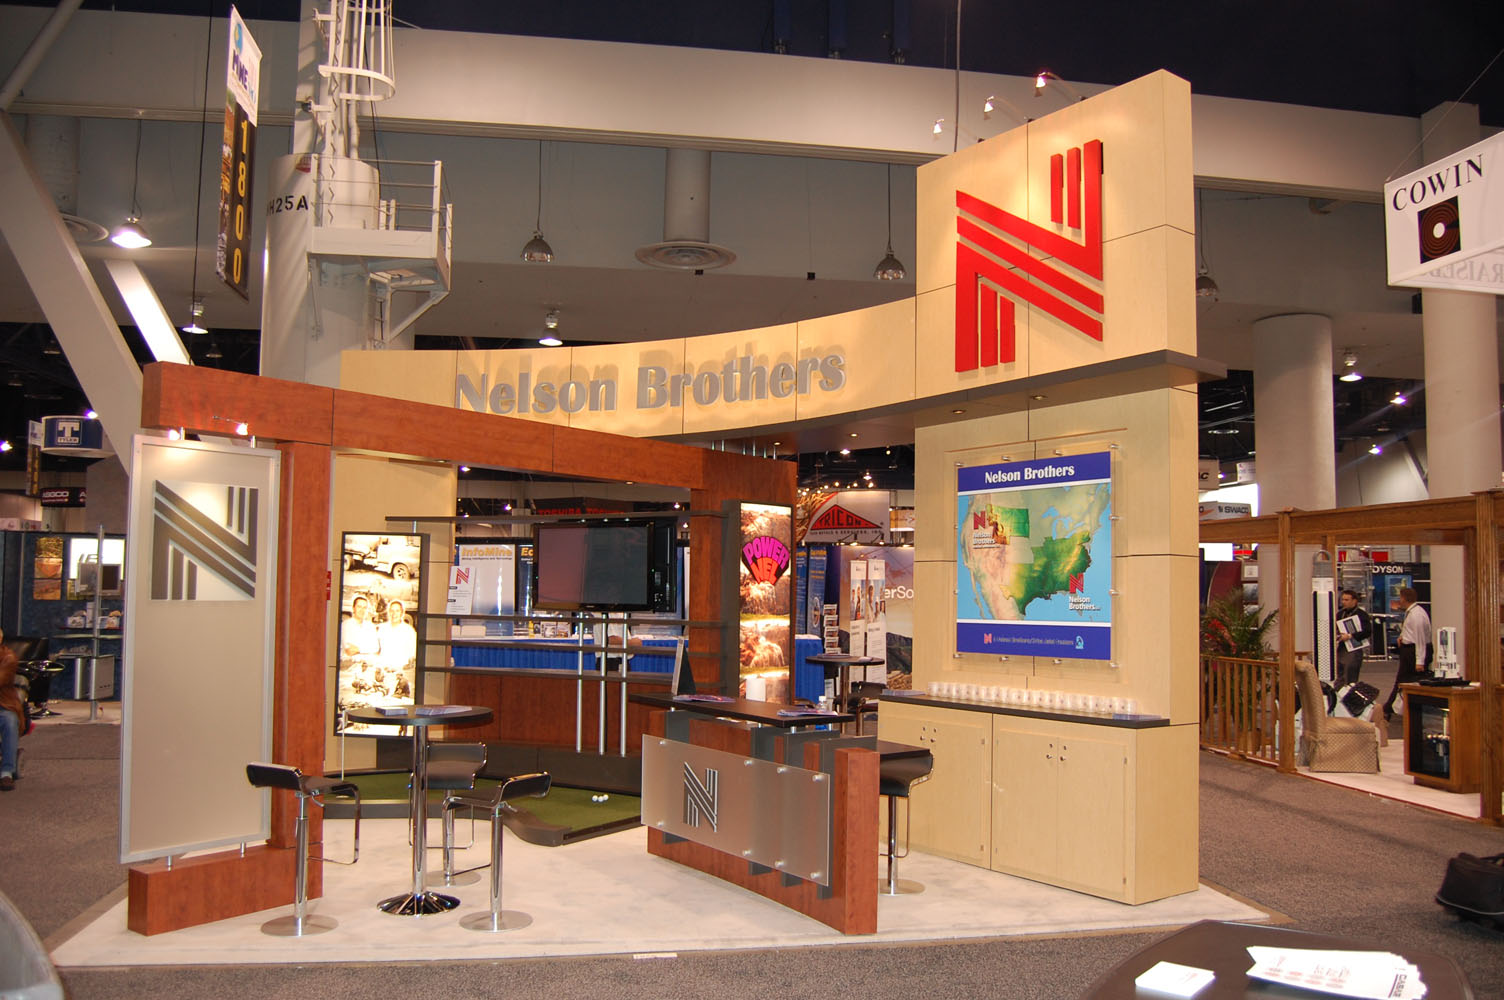 Trade Show Booth Builders : Nelson brothers by josh ascolese at coroflot